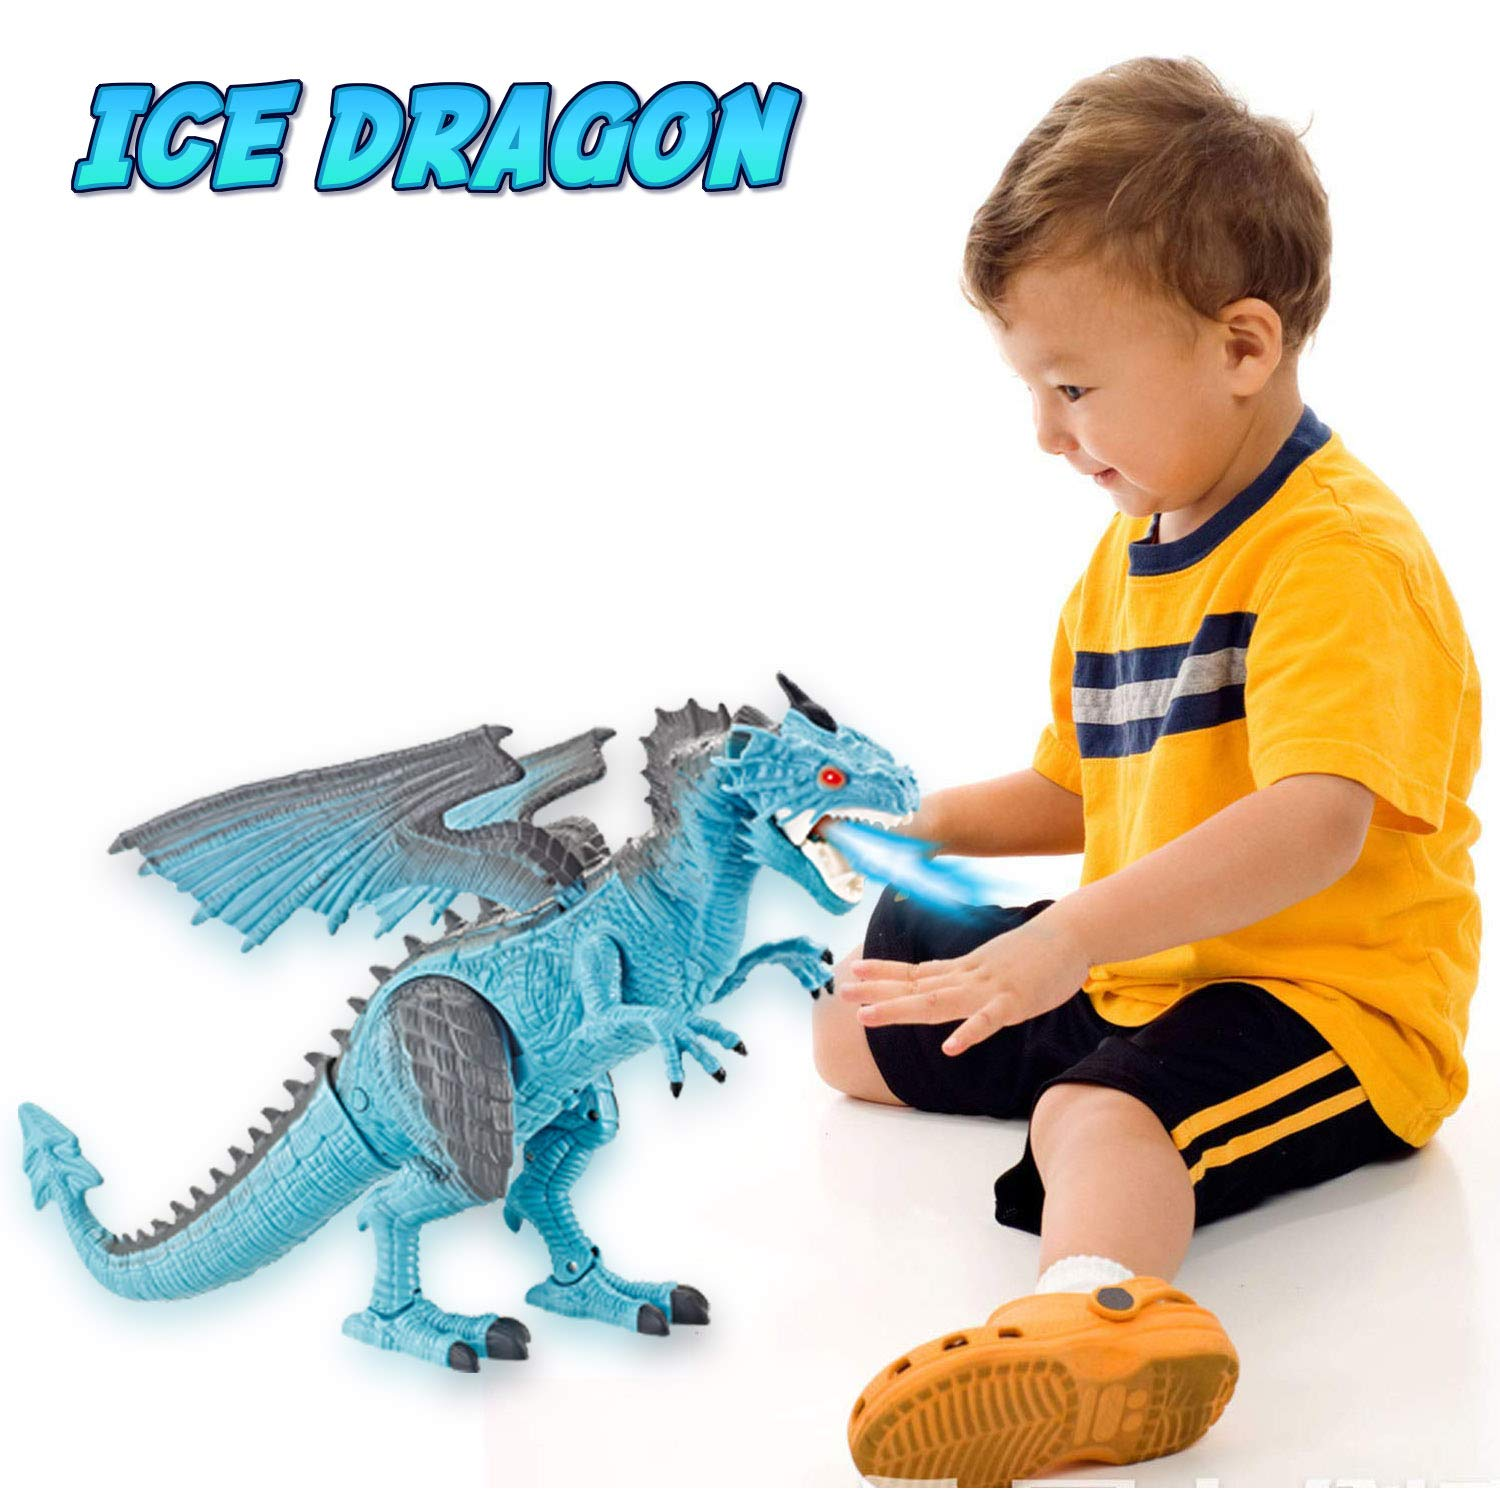 Liberty Imports Dino Planet Remote Control RC Walking Dinosaur Toy with Breathing Smoke, Shaking Head, Light Up Eyes and Sounds (Ice Dragon (with Smoke)) by Liberty Imports (Image #6)